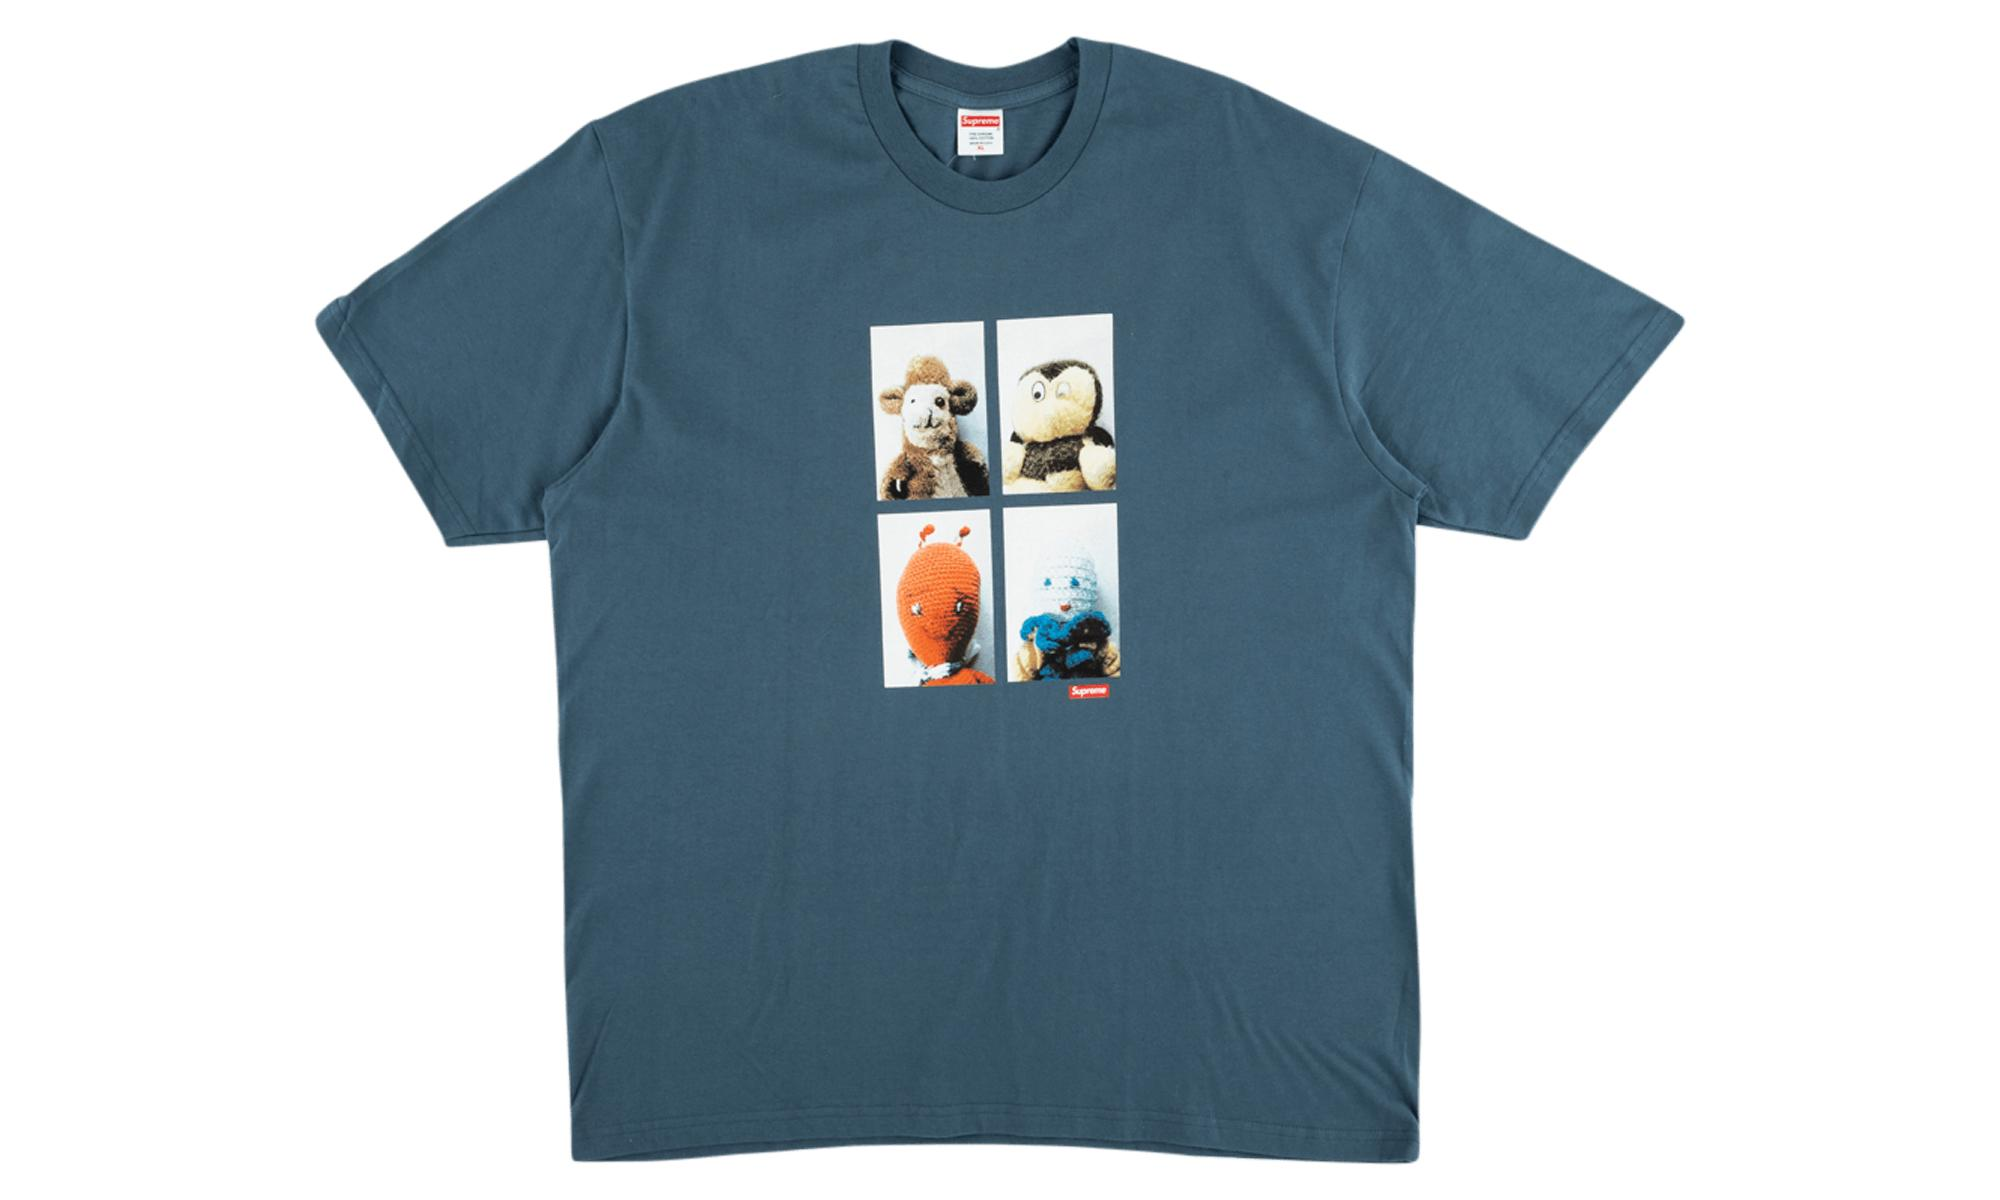 8c2135e0a35 Supreme - Blue Mike Kelley Ahh Youth Tee for Men - Lyst. View fullscreen